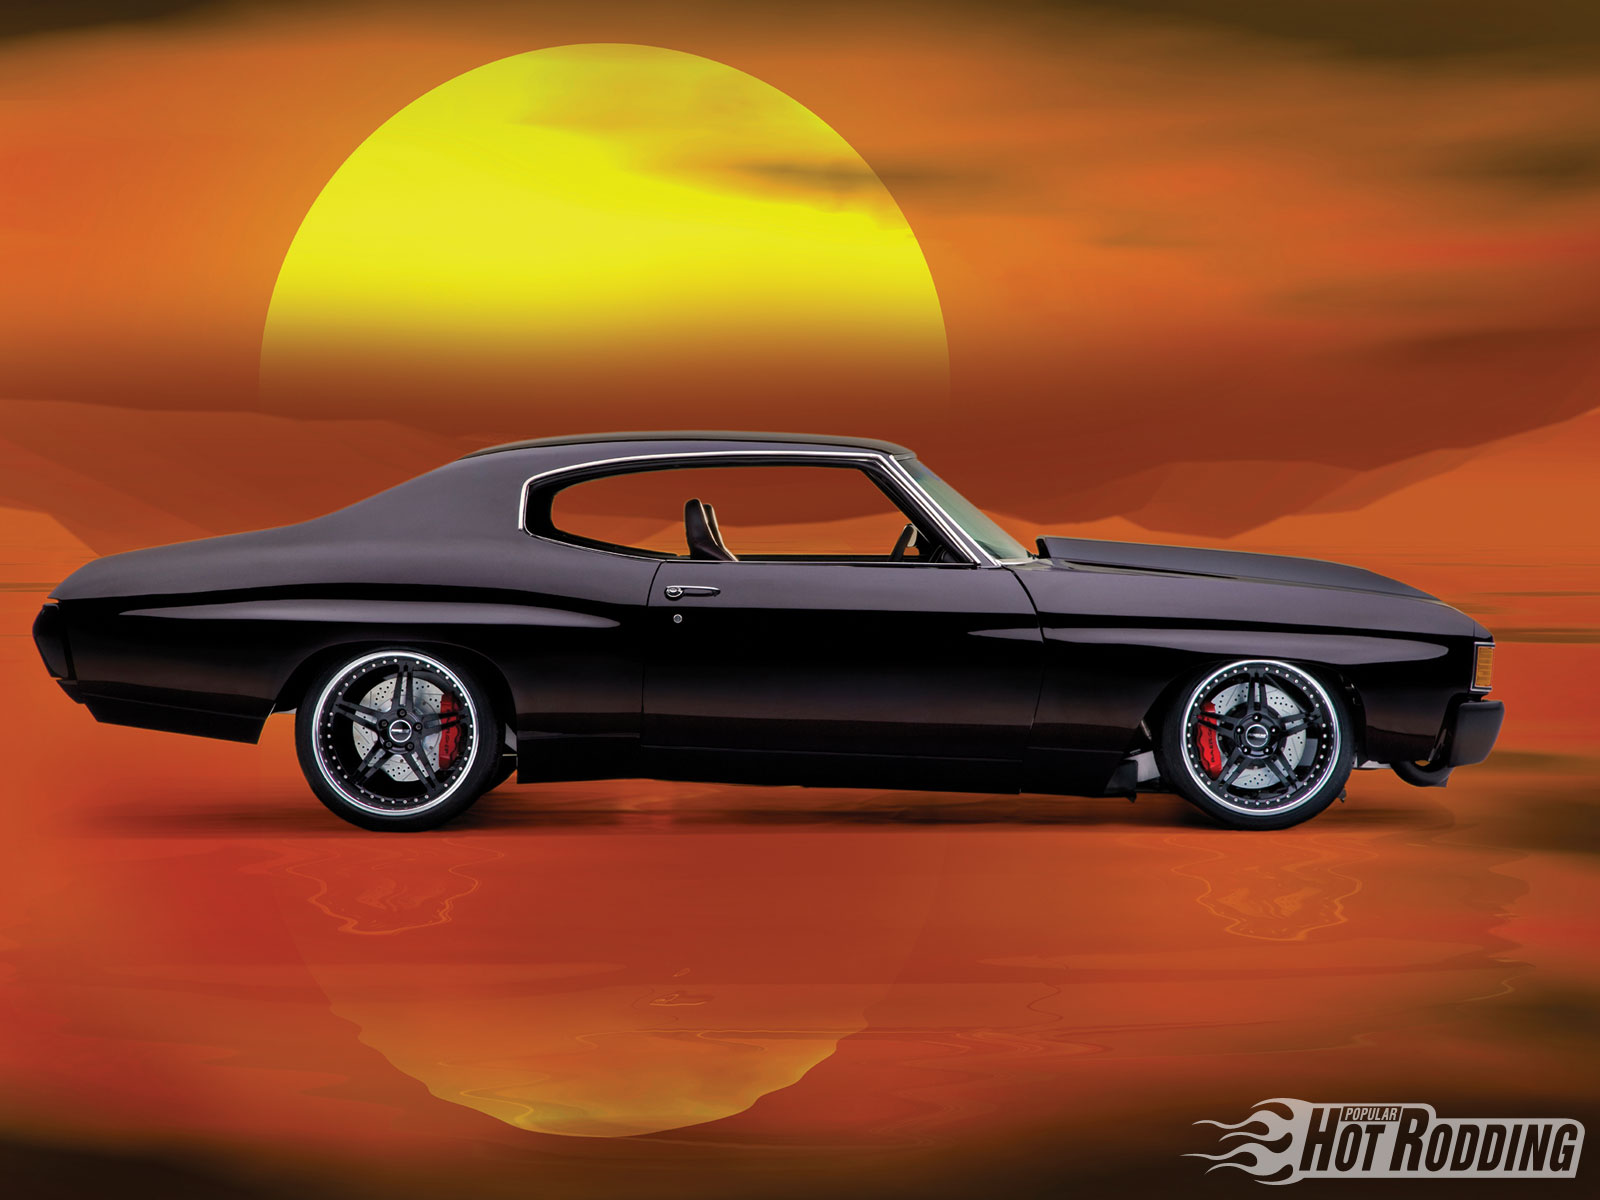 1972 Chevy Chevelle Computer Wallpapers Desktop Backgrounds 1600x1200